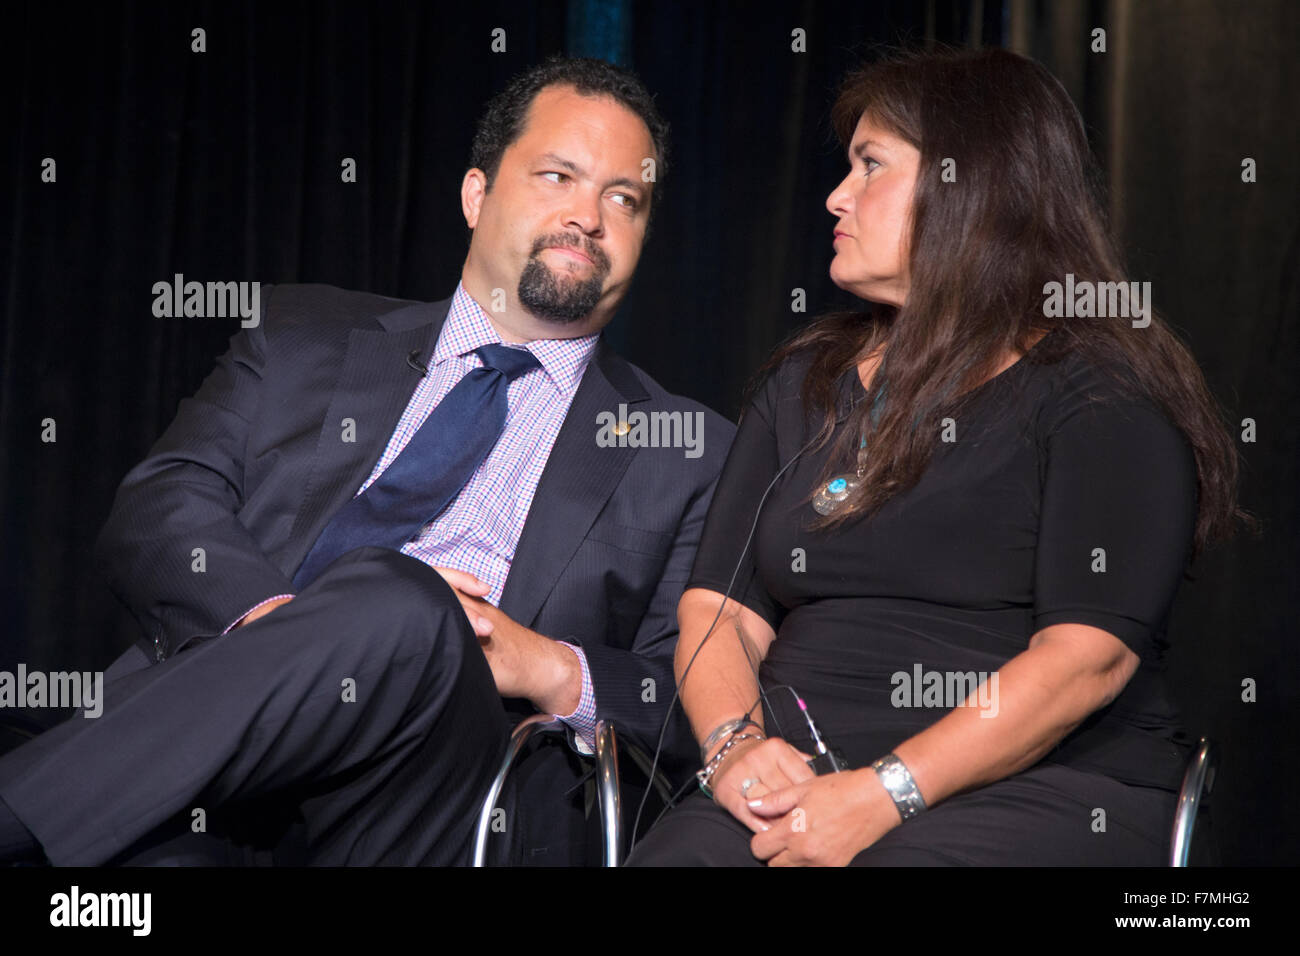 Jacqueline Pata of National Congress of American Indians with former NAACP President and CEO Ben Jealous at Newseum - Stock Image